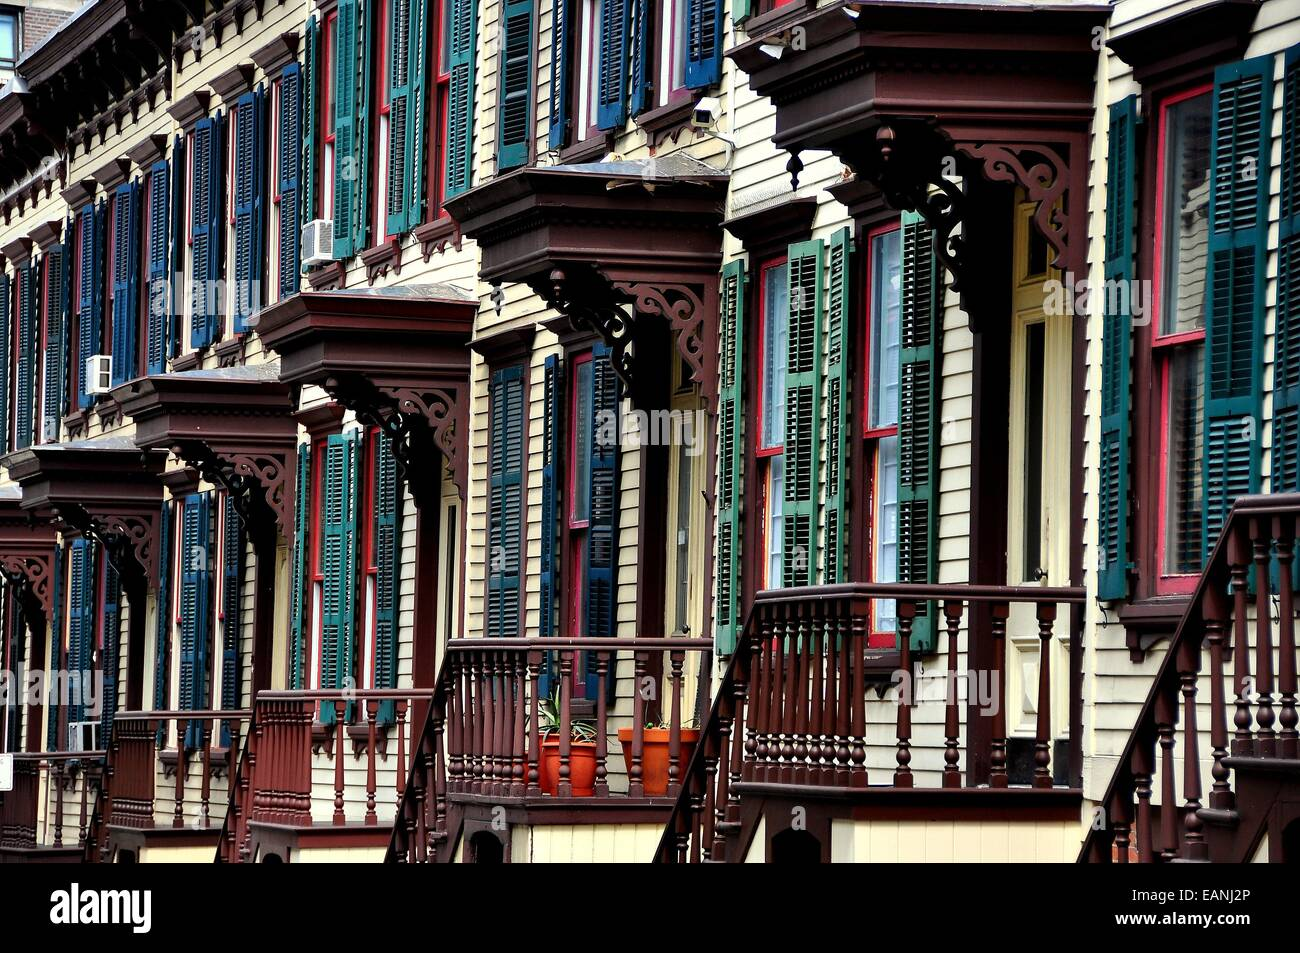 NYC:  1882 two story wooden row houses with shutters, stairway balustrades, and doorway overhangs on Sylvan Terrace Stock Photo